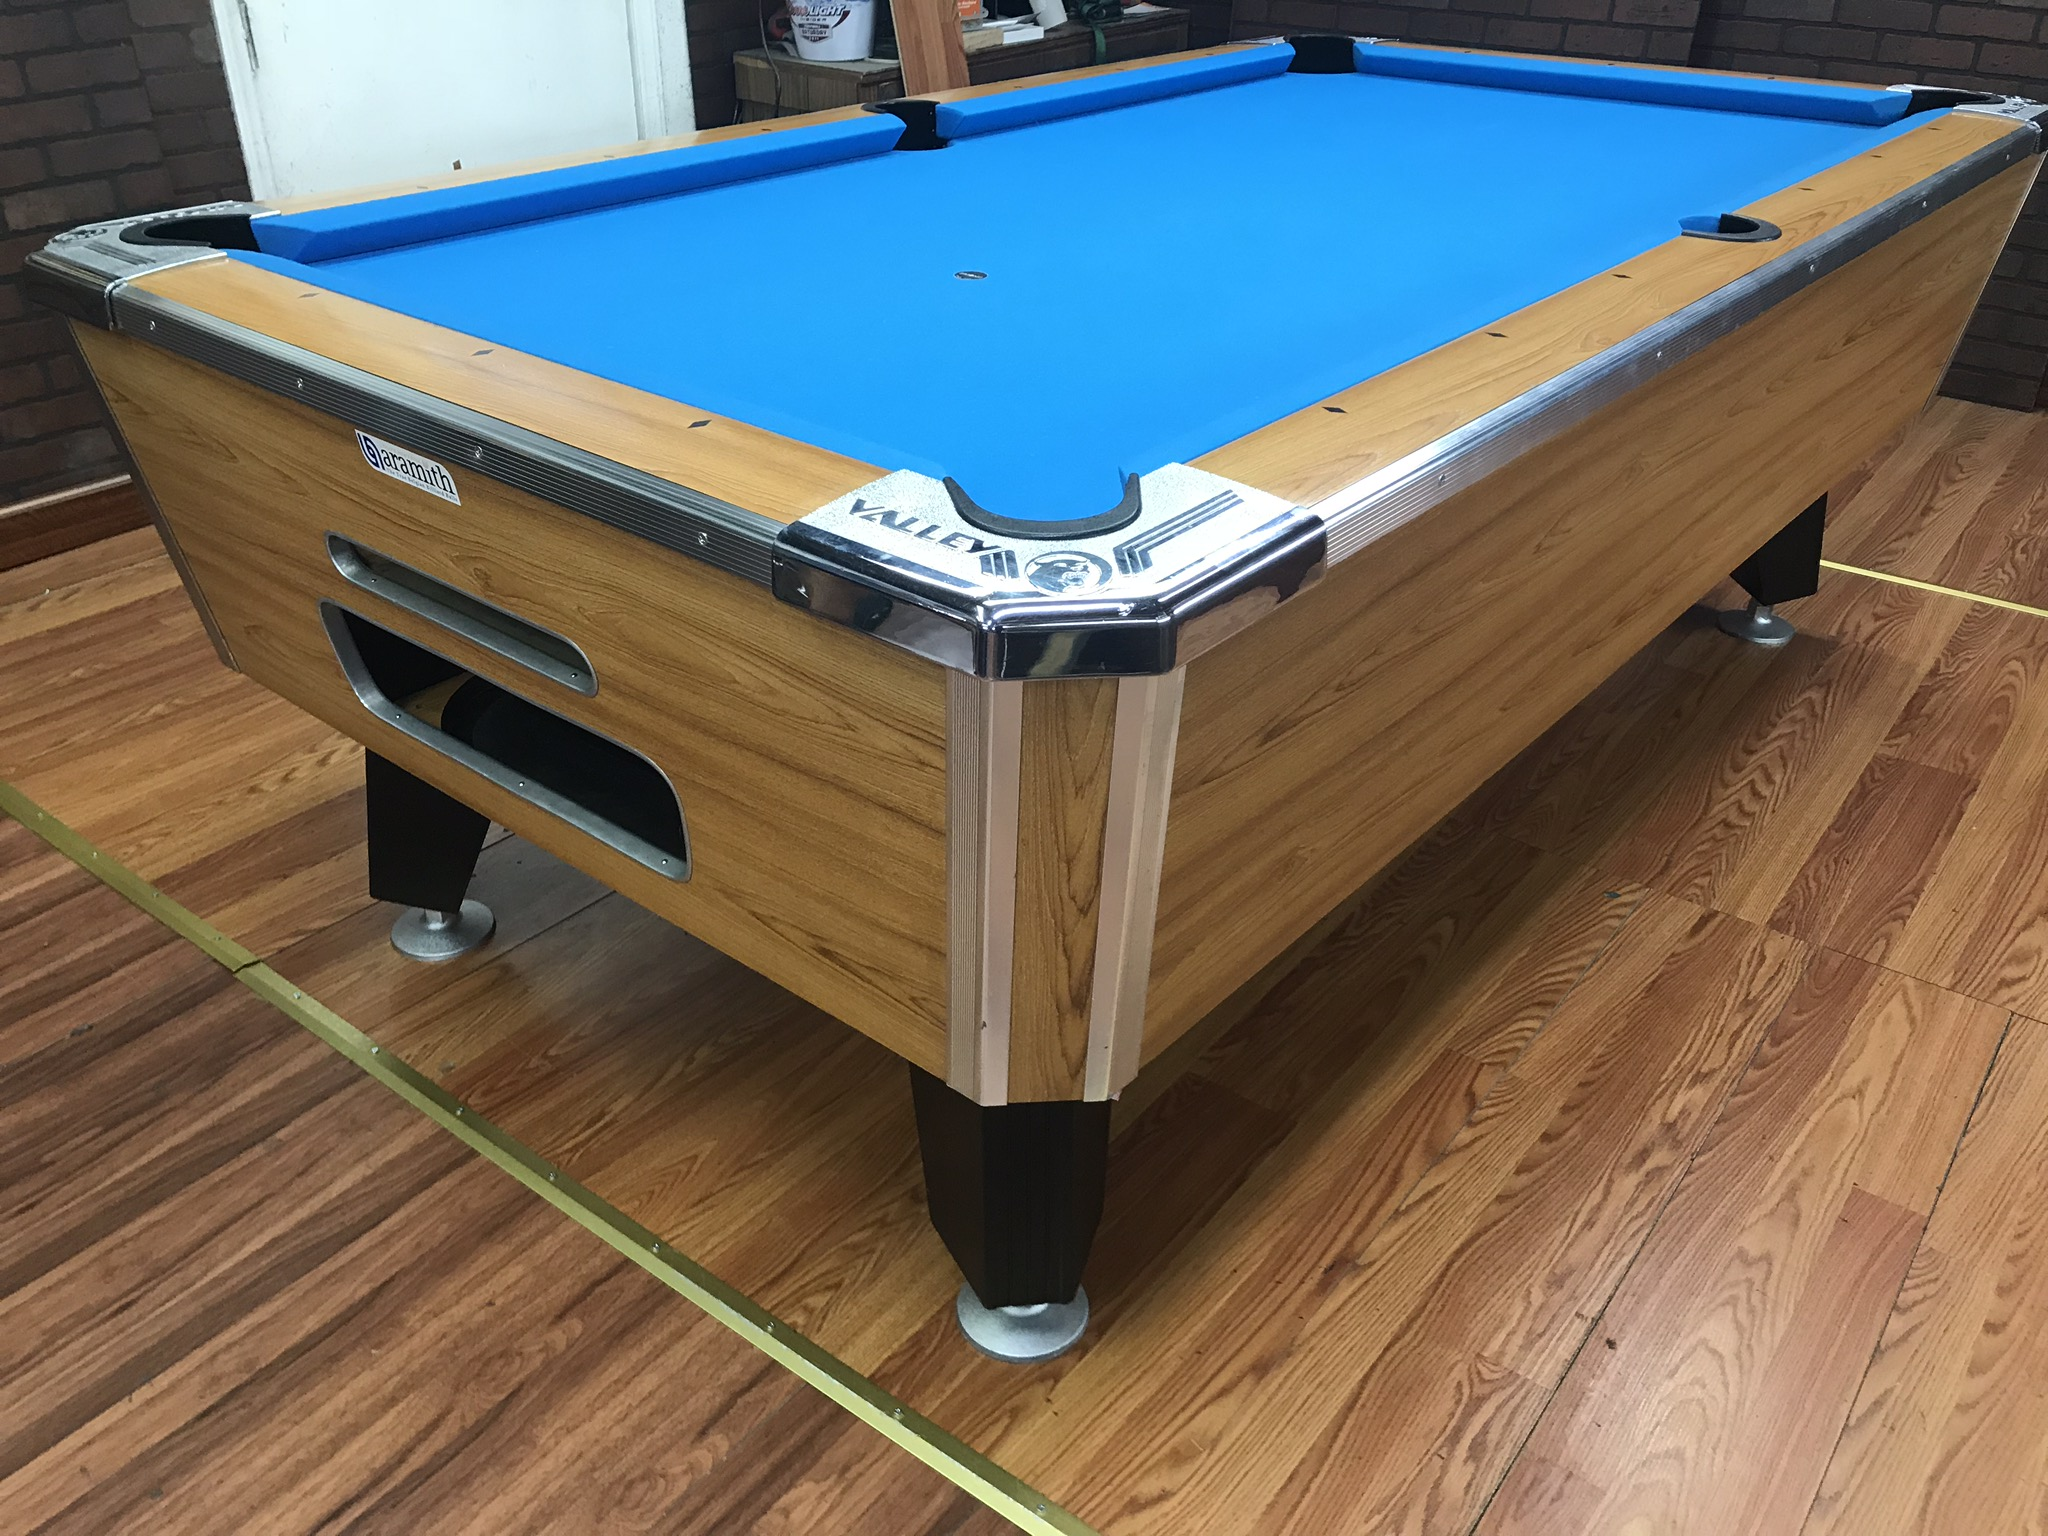 Foot Bar Pool Tables Used Coin Operated Bar Pool Tables - Valley coin operated pool table